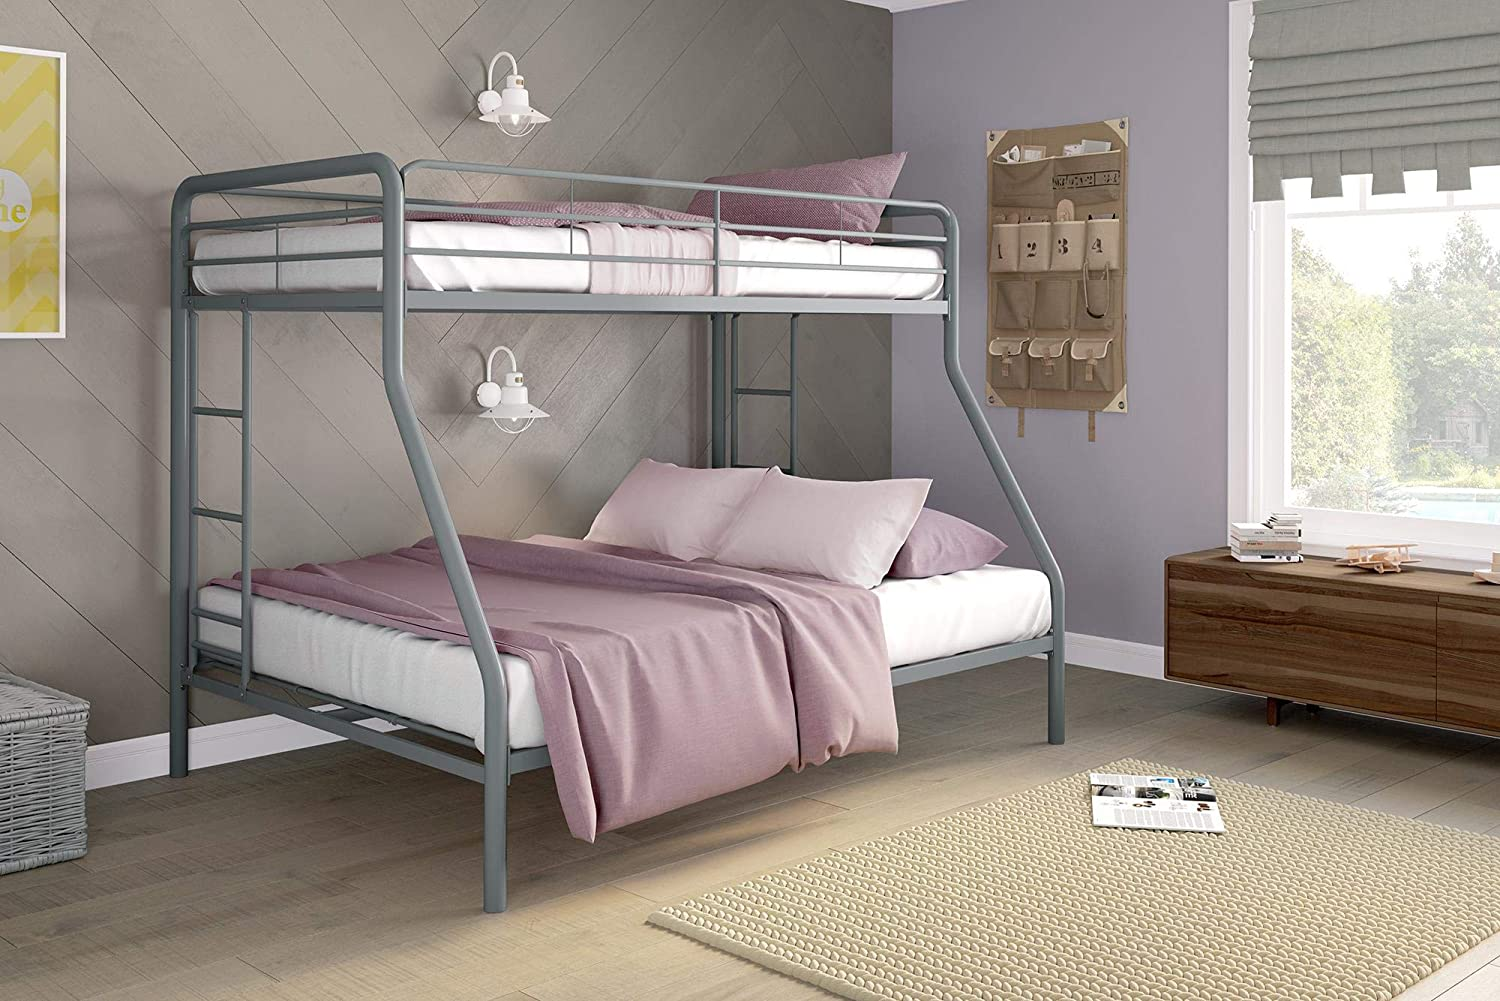 Amazon Com Dhp Twin Over Full Bunk Bed With Metal Frame And Ladder Space Saving Design Silver Furniture Decor